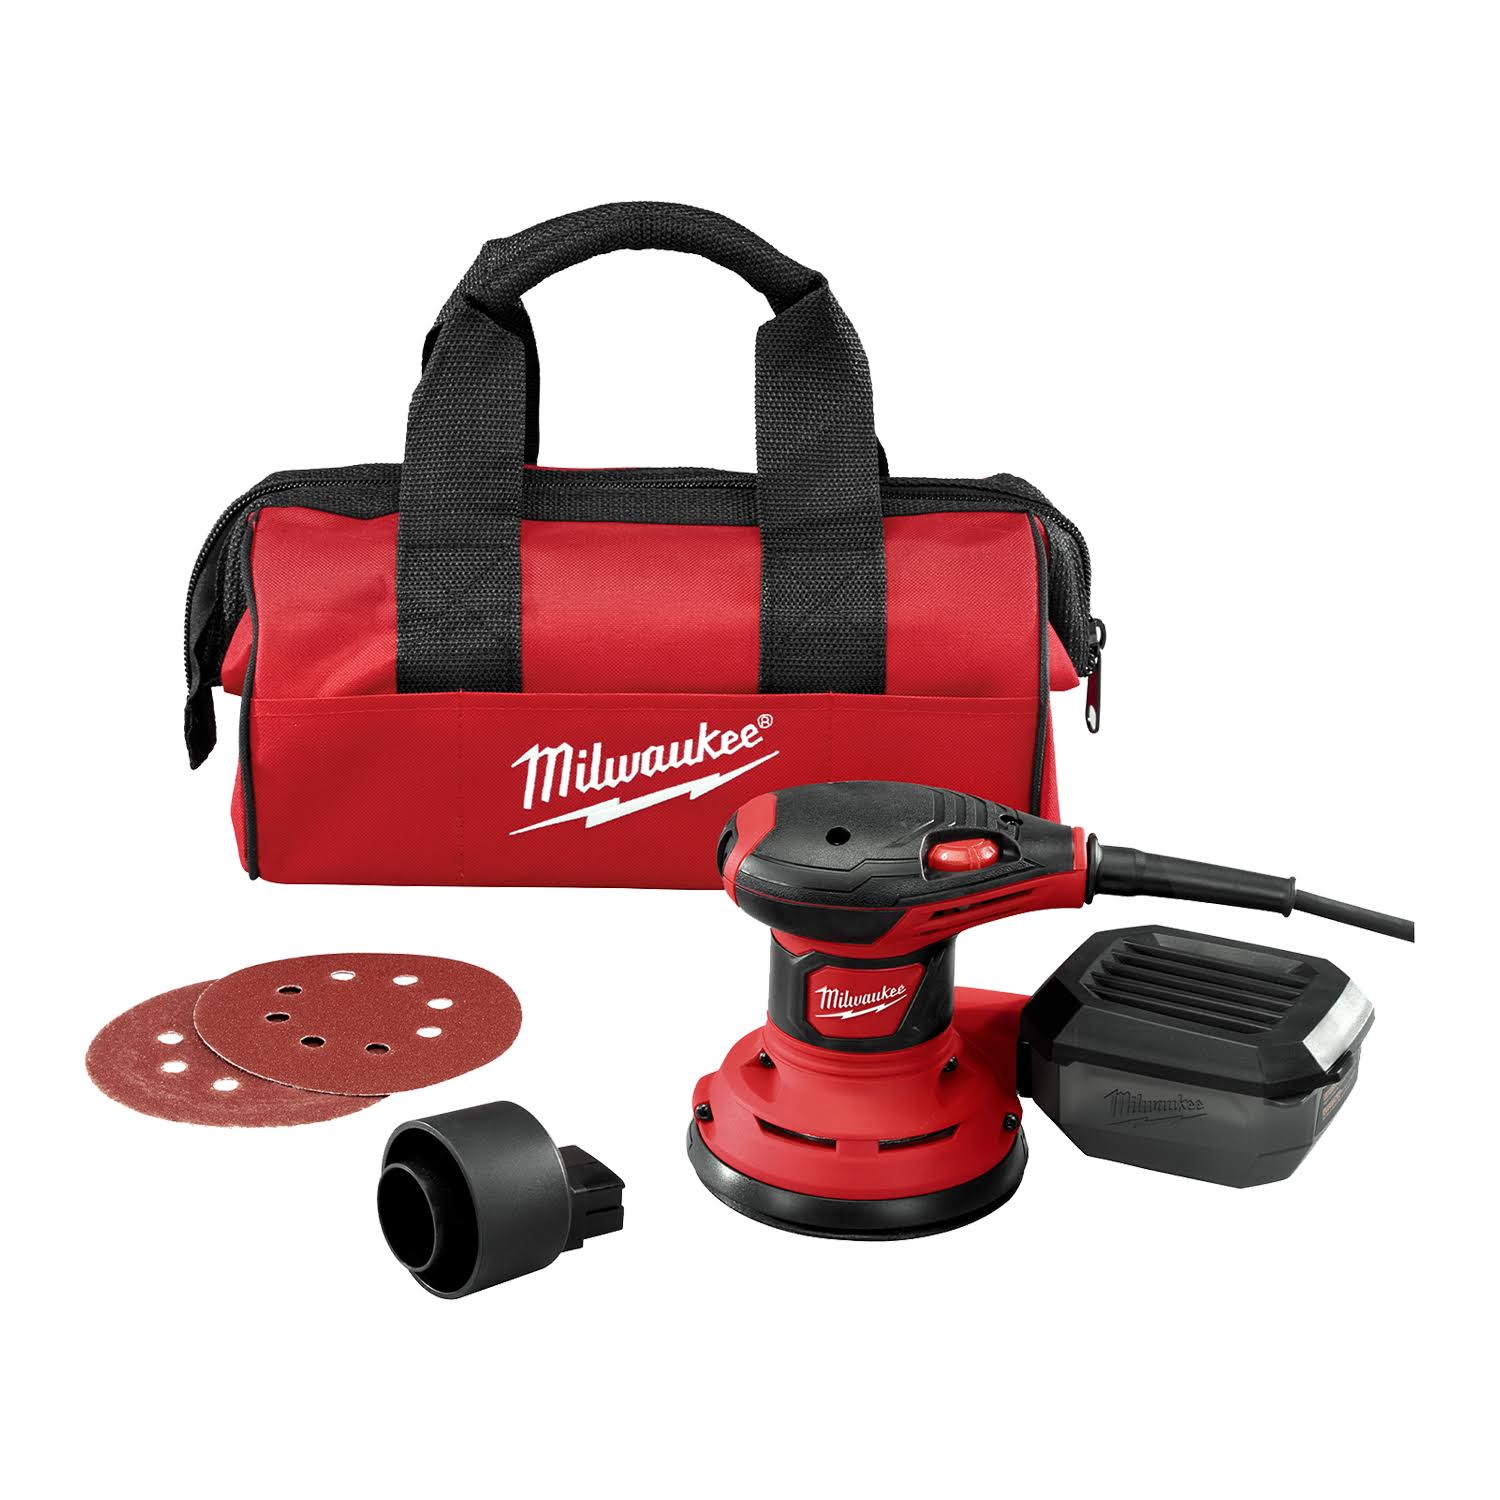 Milwaukee Corded Random Orbit Palm Sander - 3 Amp, 5""